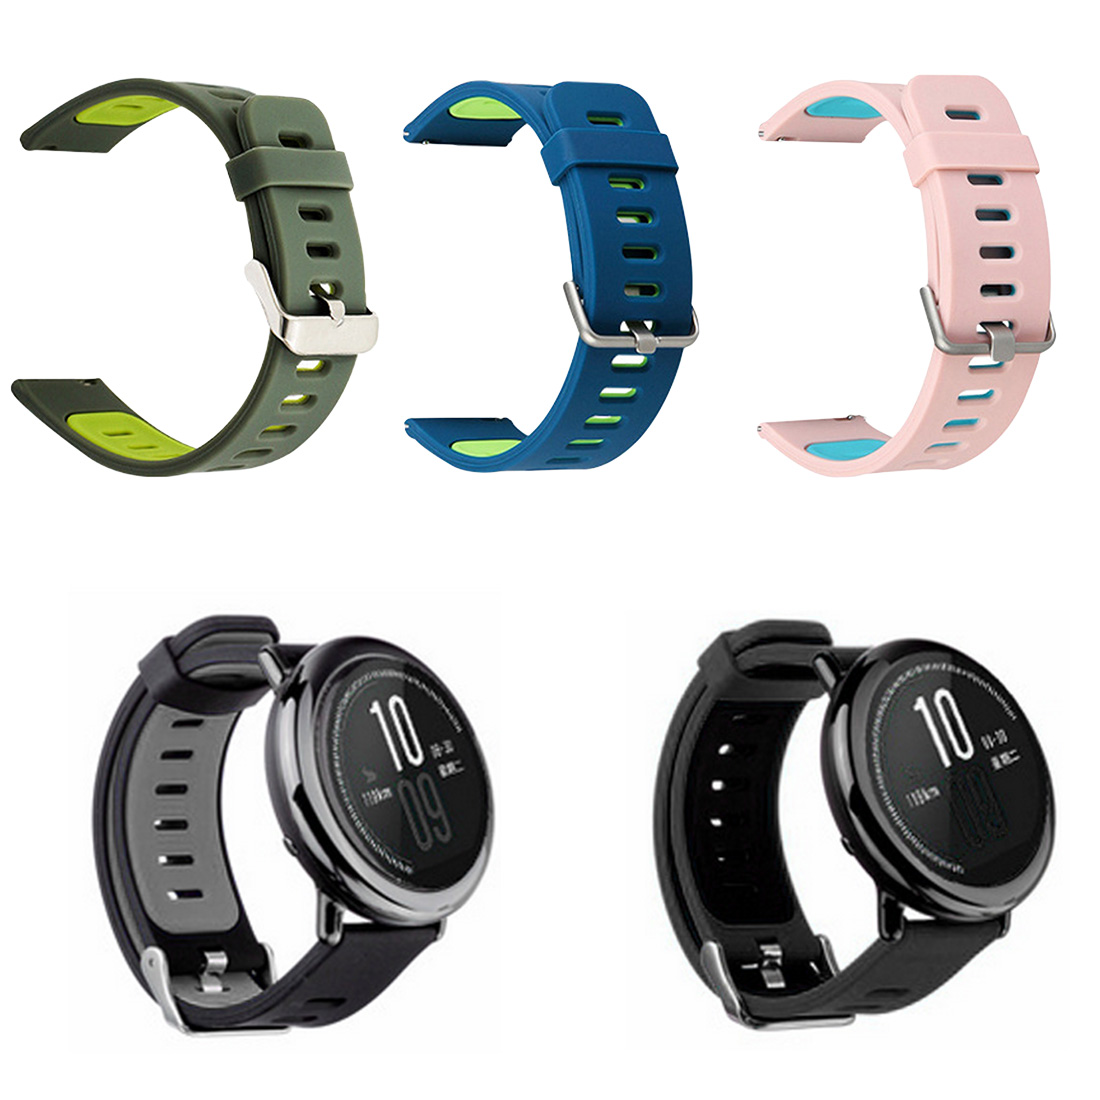 22MM Silicone Strap Two-color Print Replacement Wristband  For Wami Smart Watches And Other Unisex Style